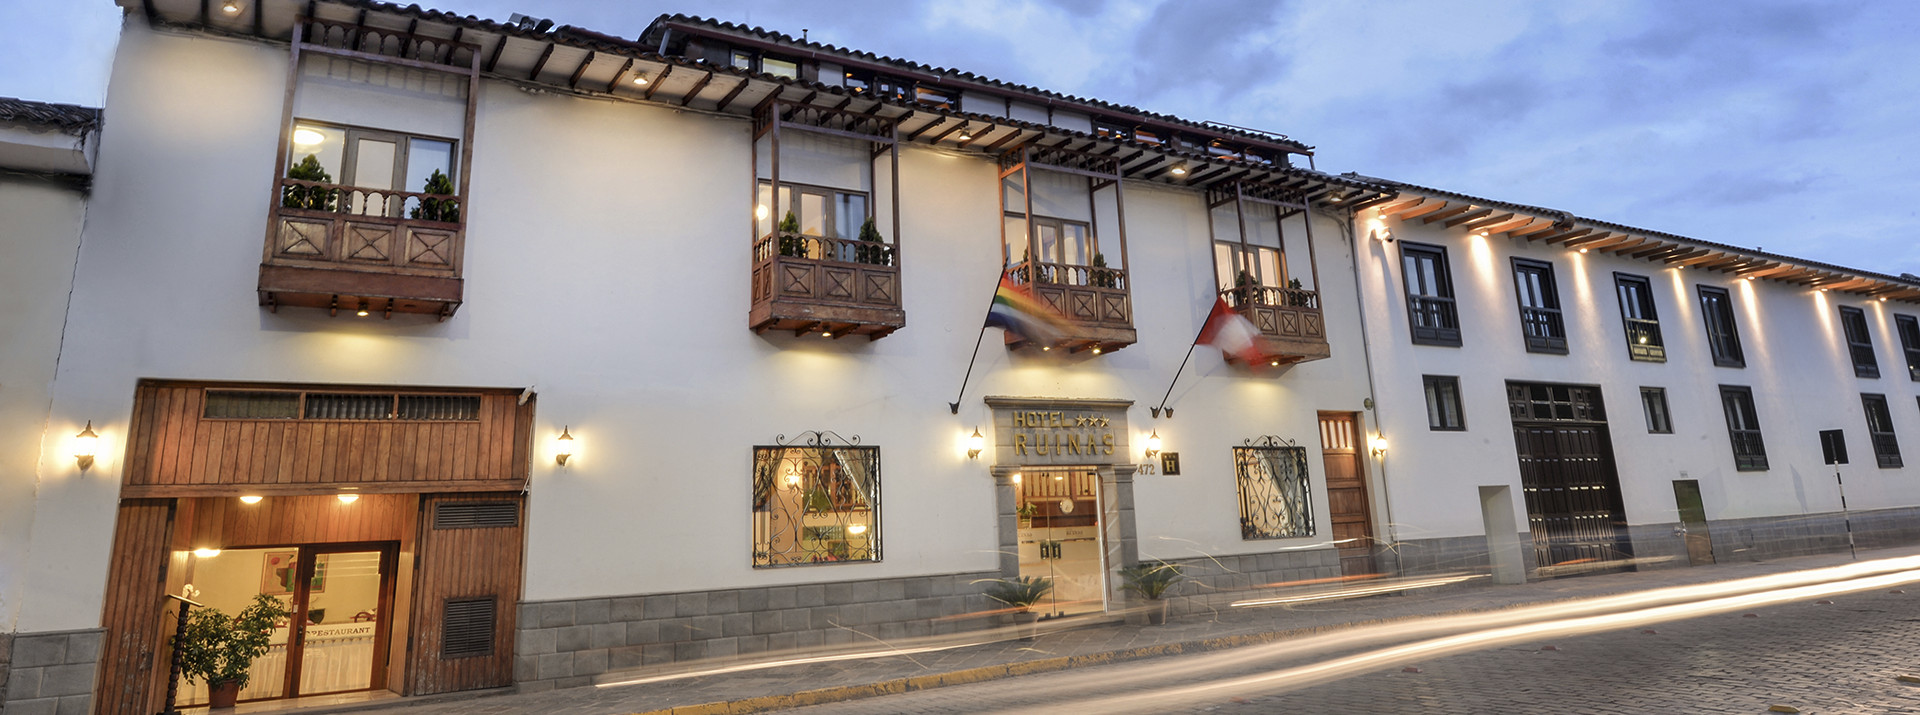 Hotel Ruinas Boutique, Cusco - Peru